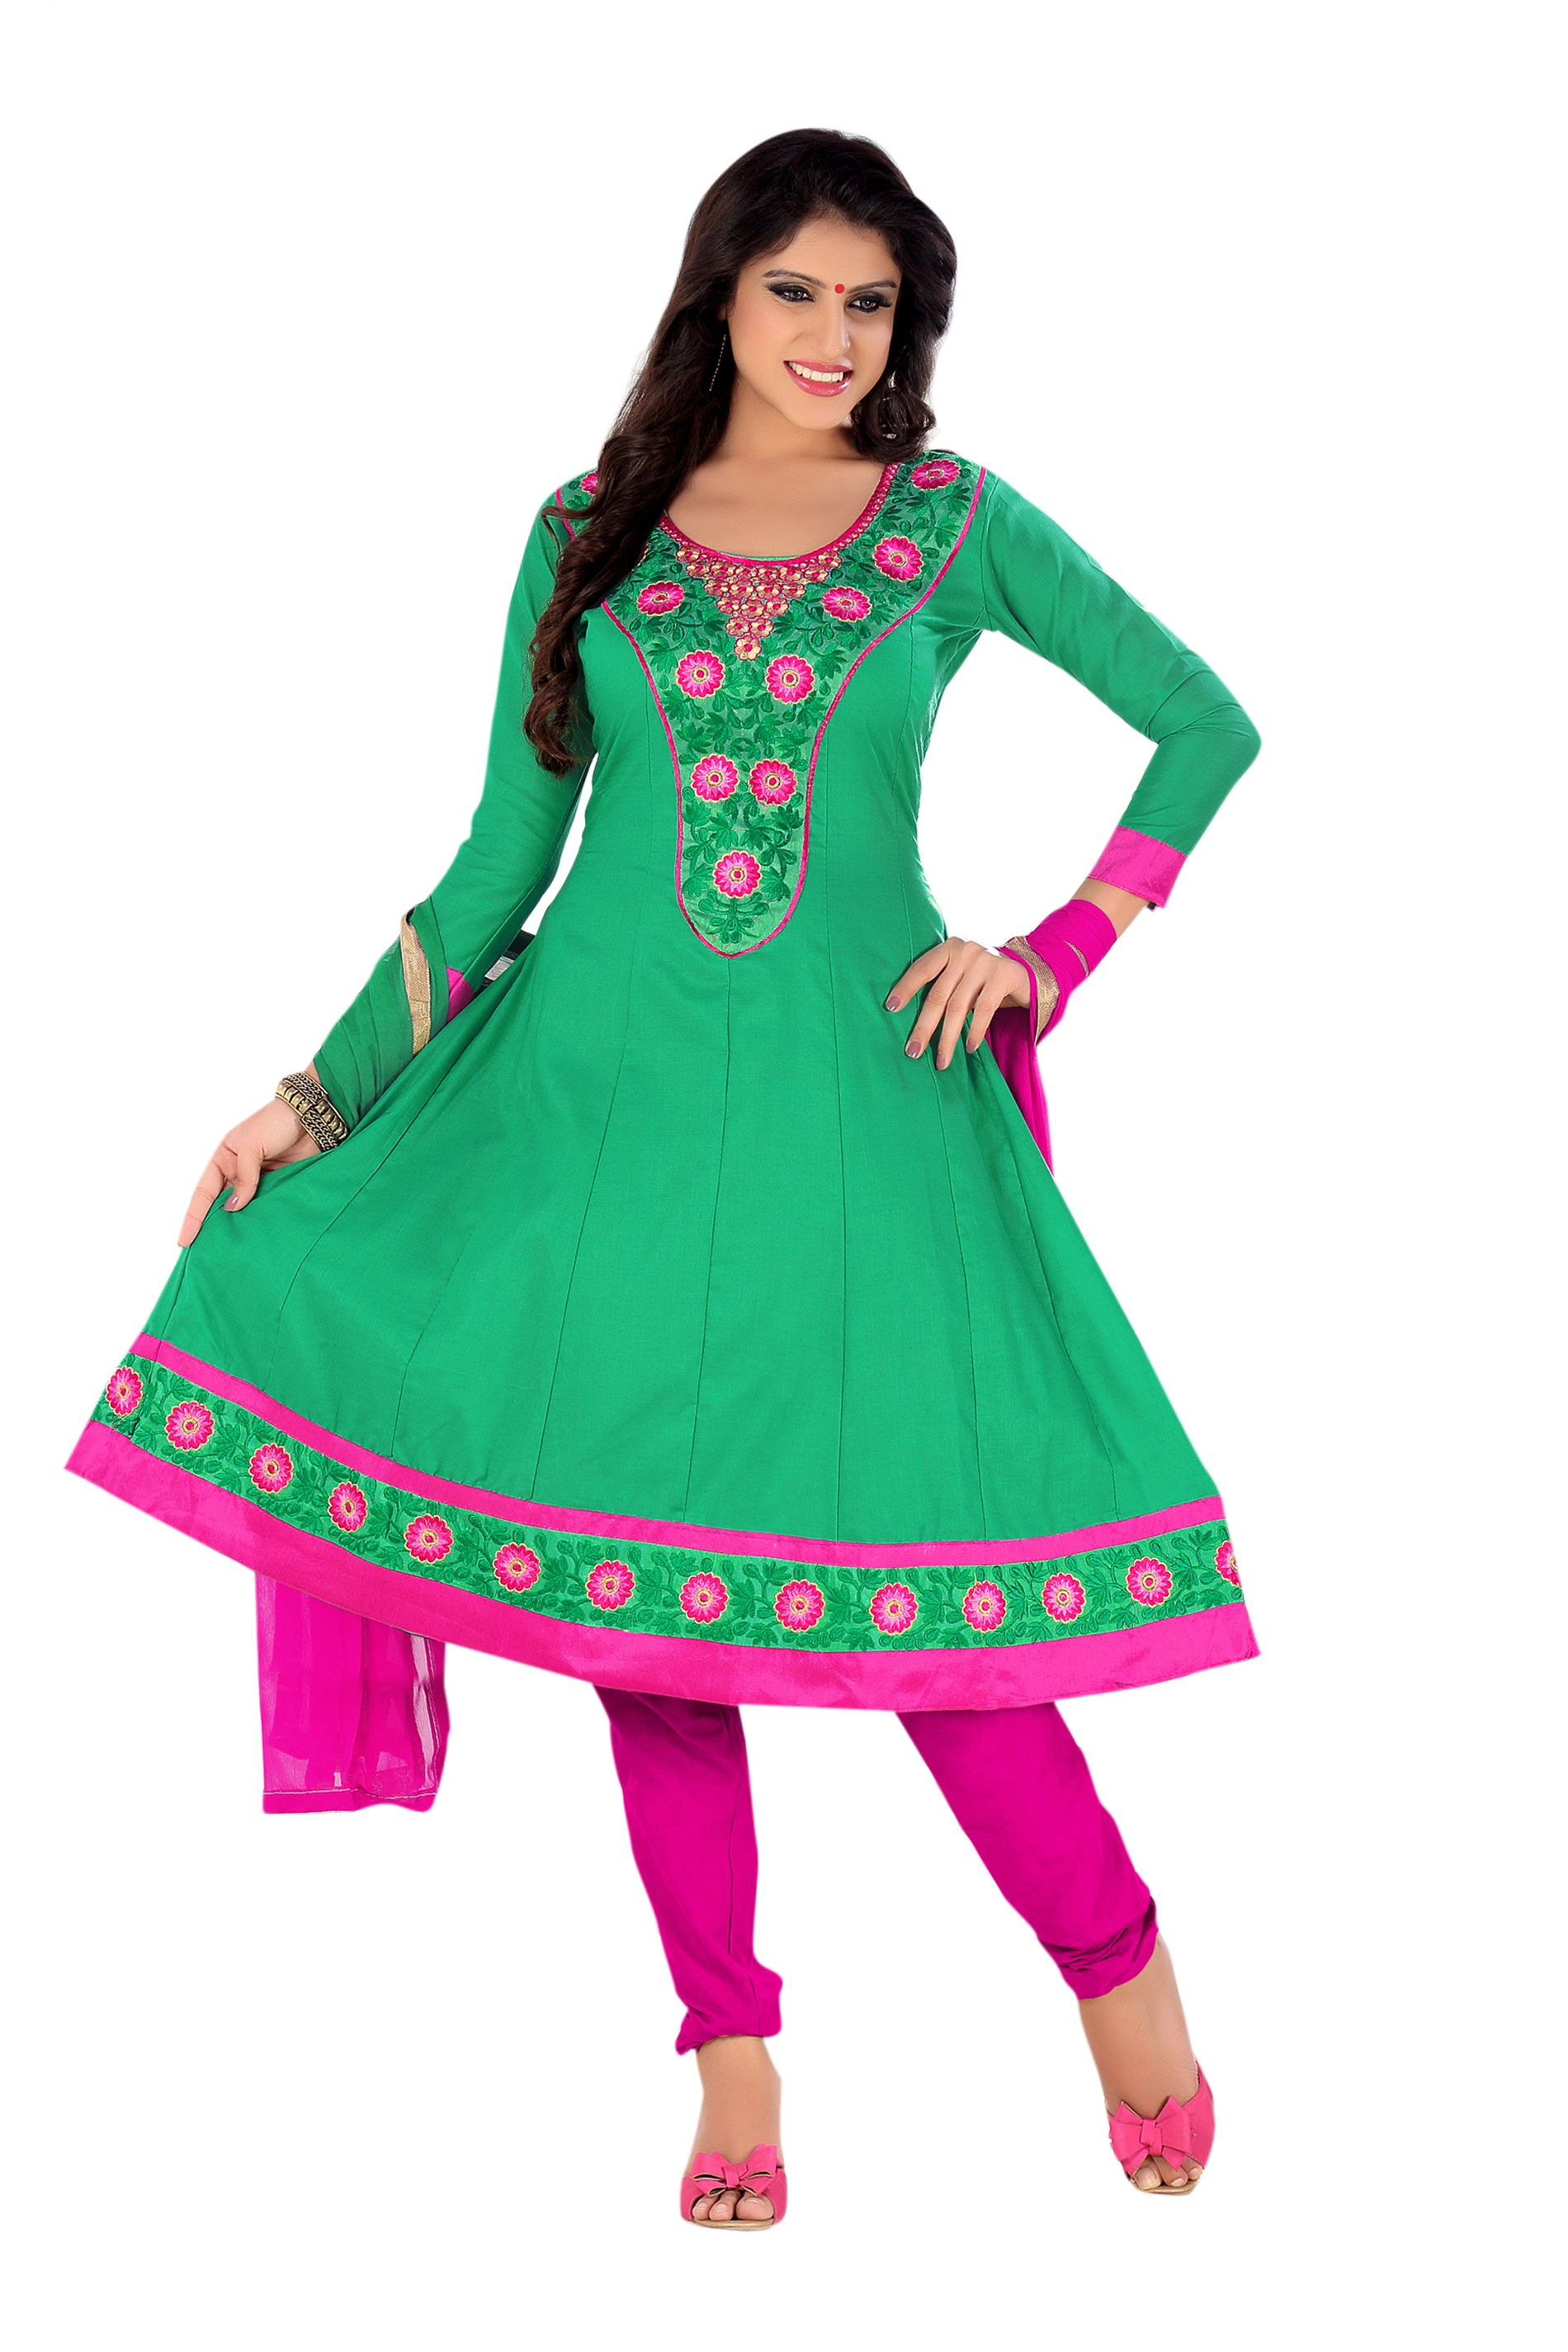 Florence green ragini embroidered cotton suit online shopping